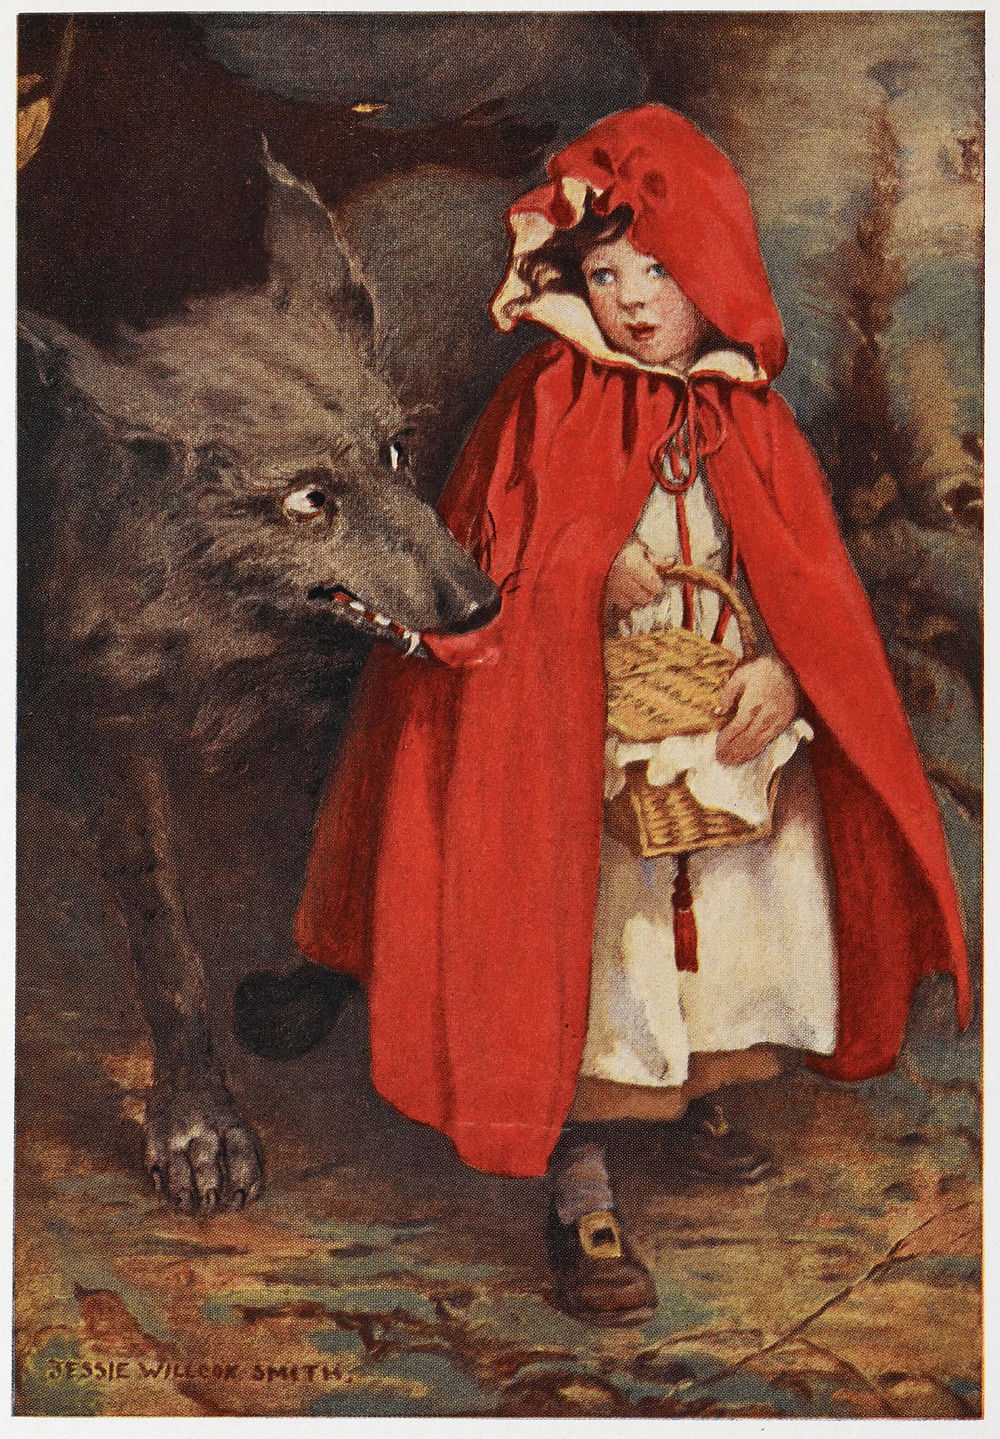 Jessie Willcox Smith, Little Red Riding Hood, A Child's Book of Stories (1911). Courtesy: Wikimedia Commons